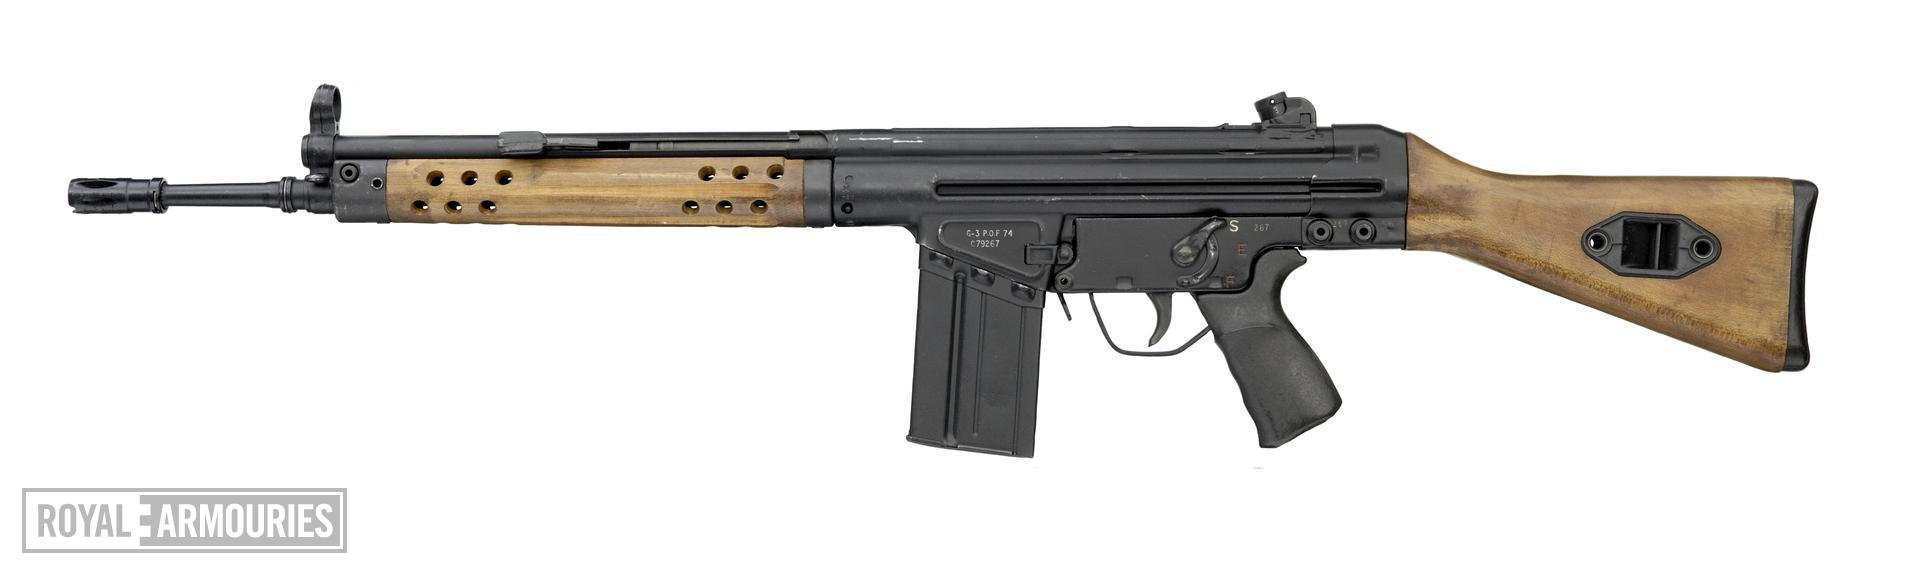 Centrefire automatic rifle - POF G3